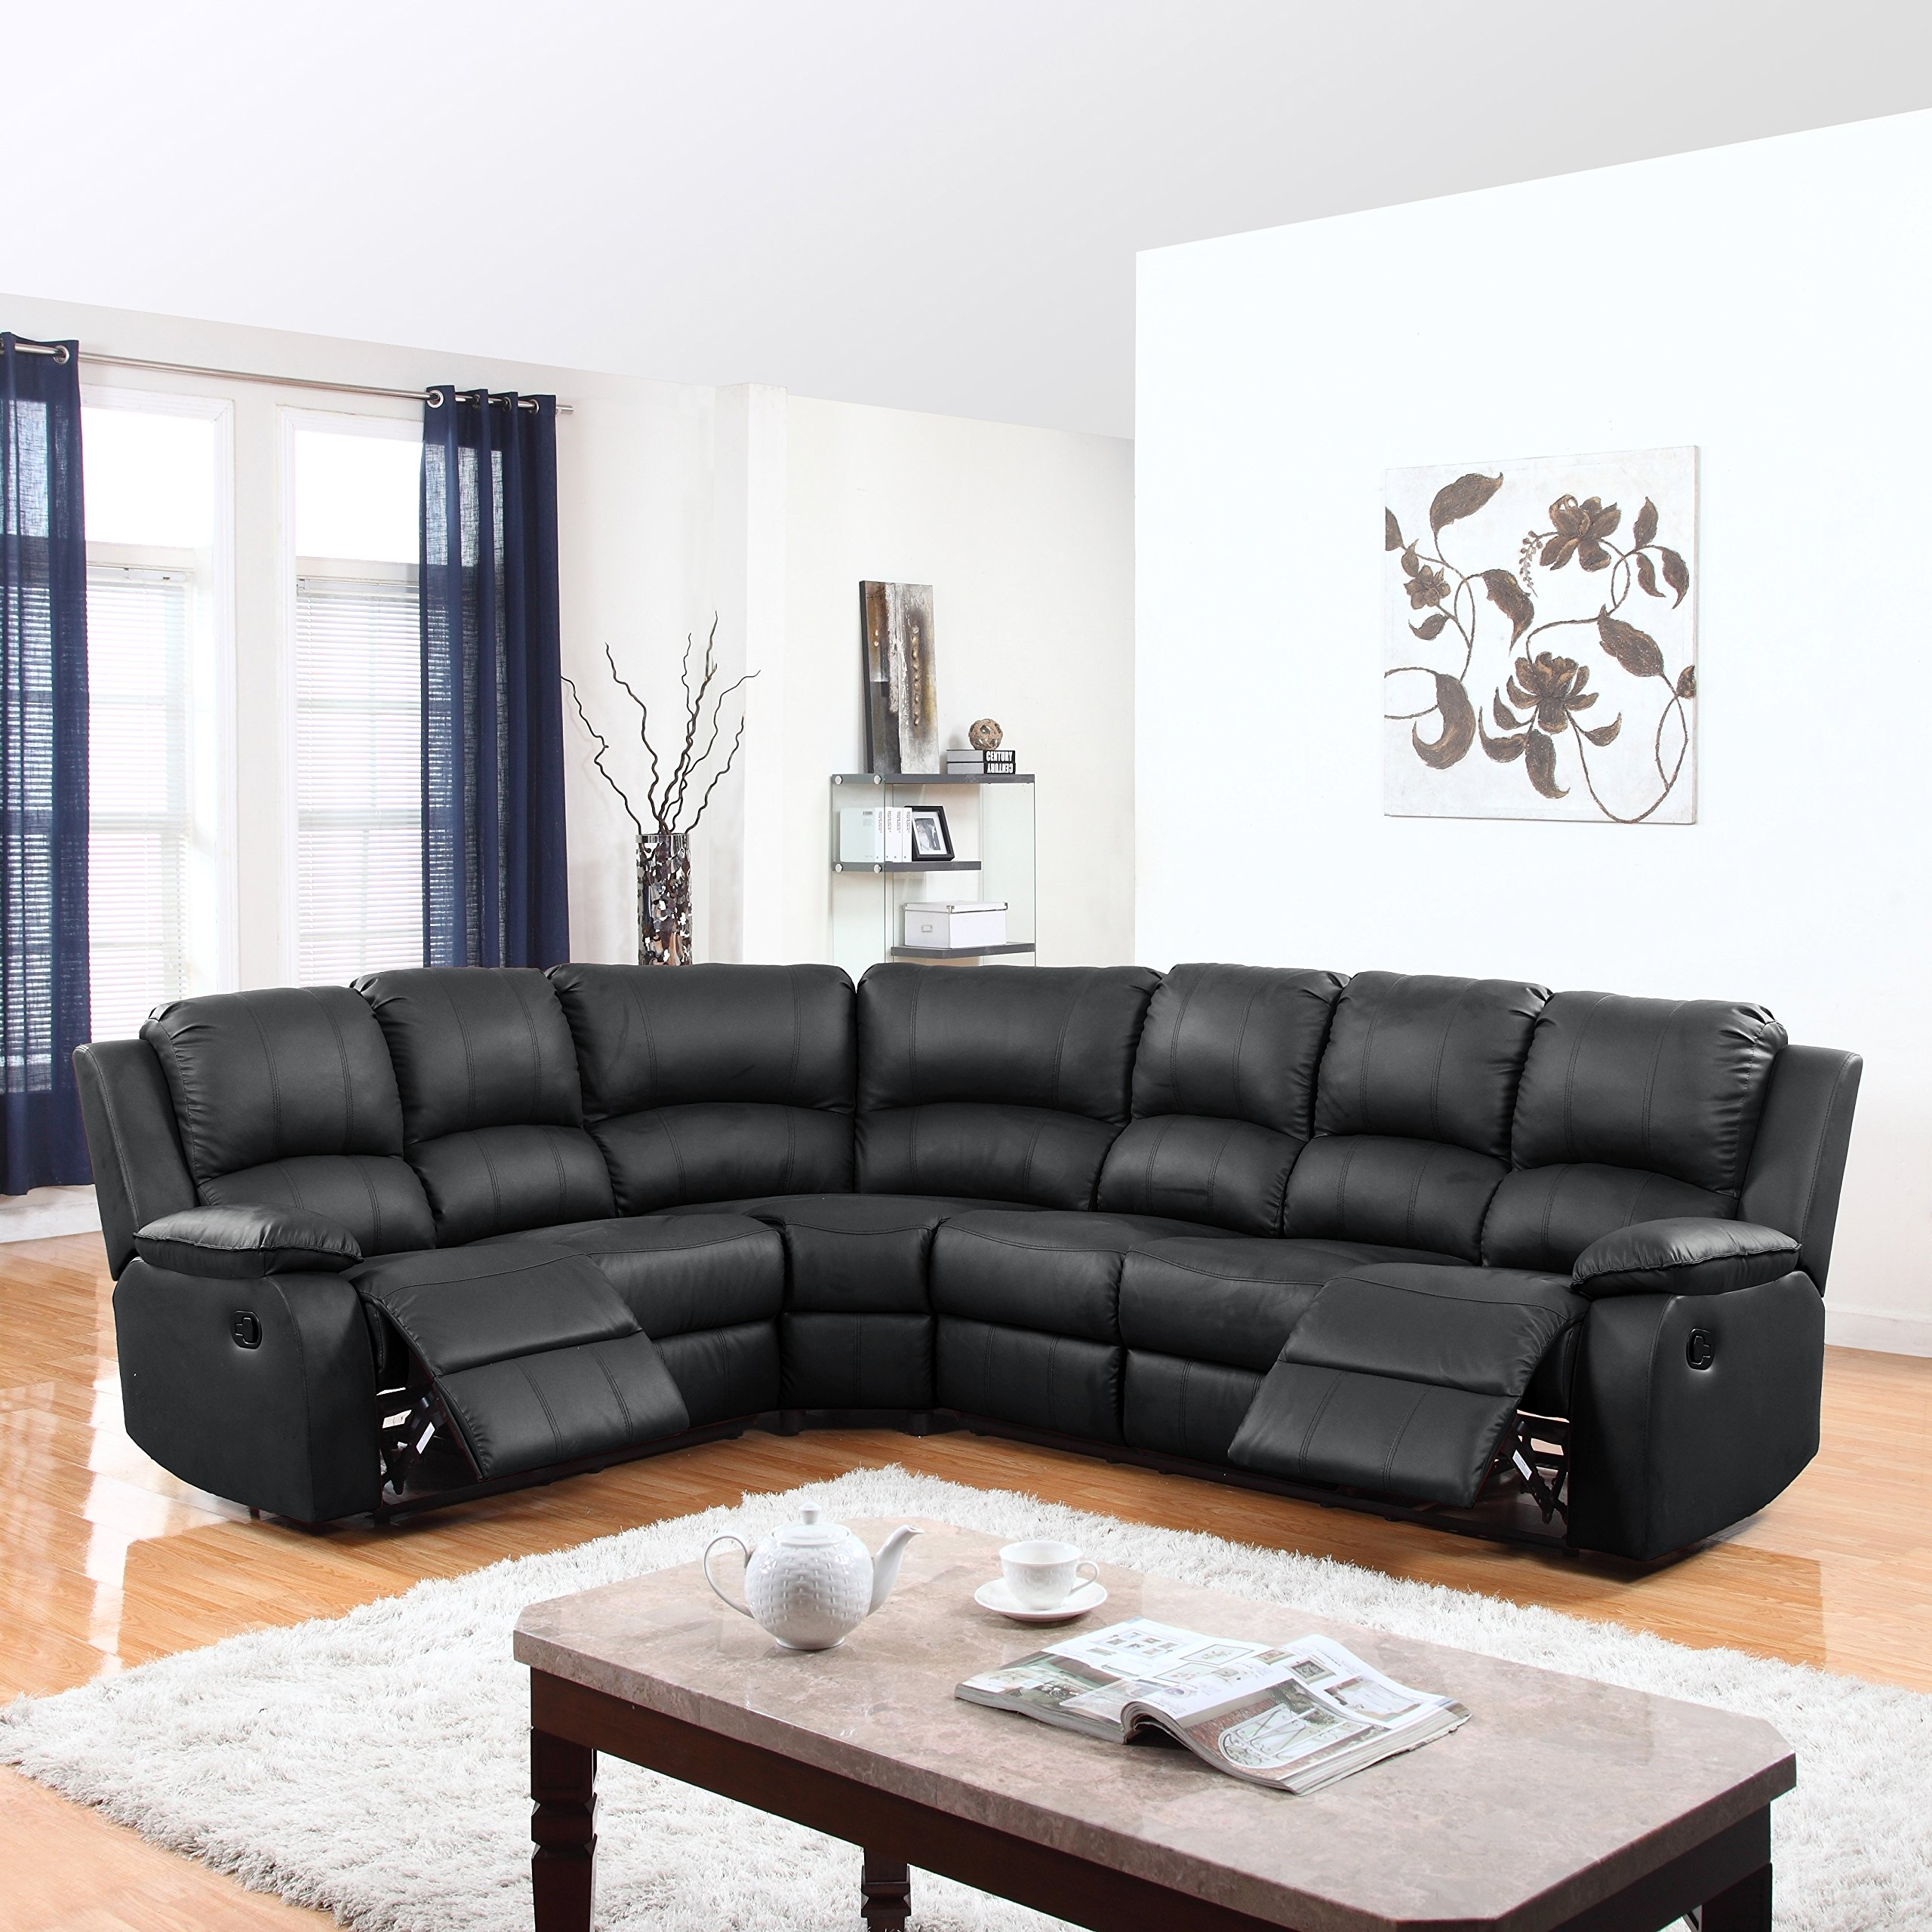 25+ Best Extra Large Sectional Sofas Ideas On Pinterest .